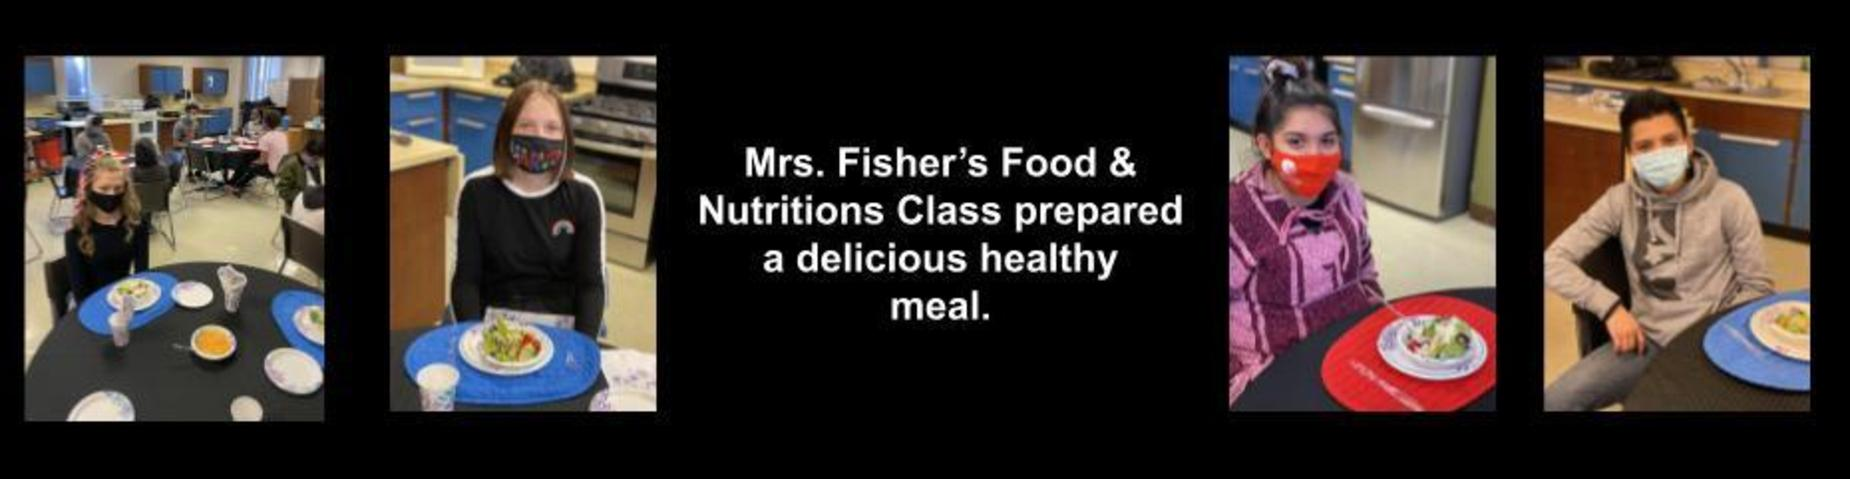 Mrs. Fishers Food & Nutrition Class